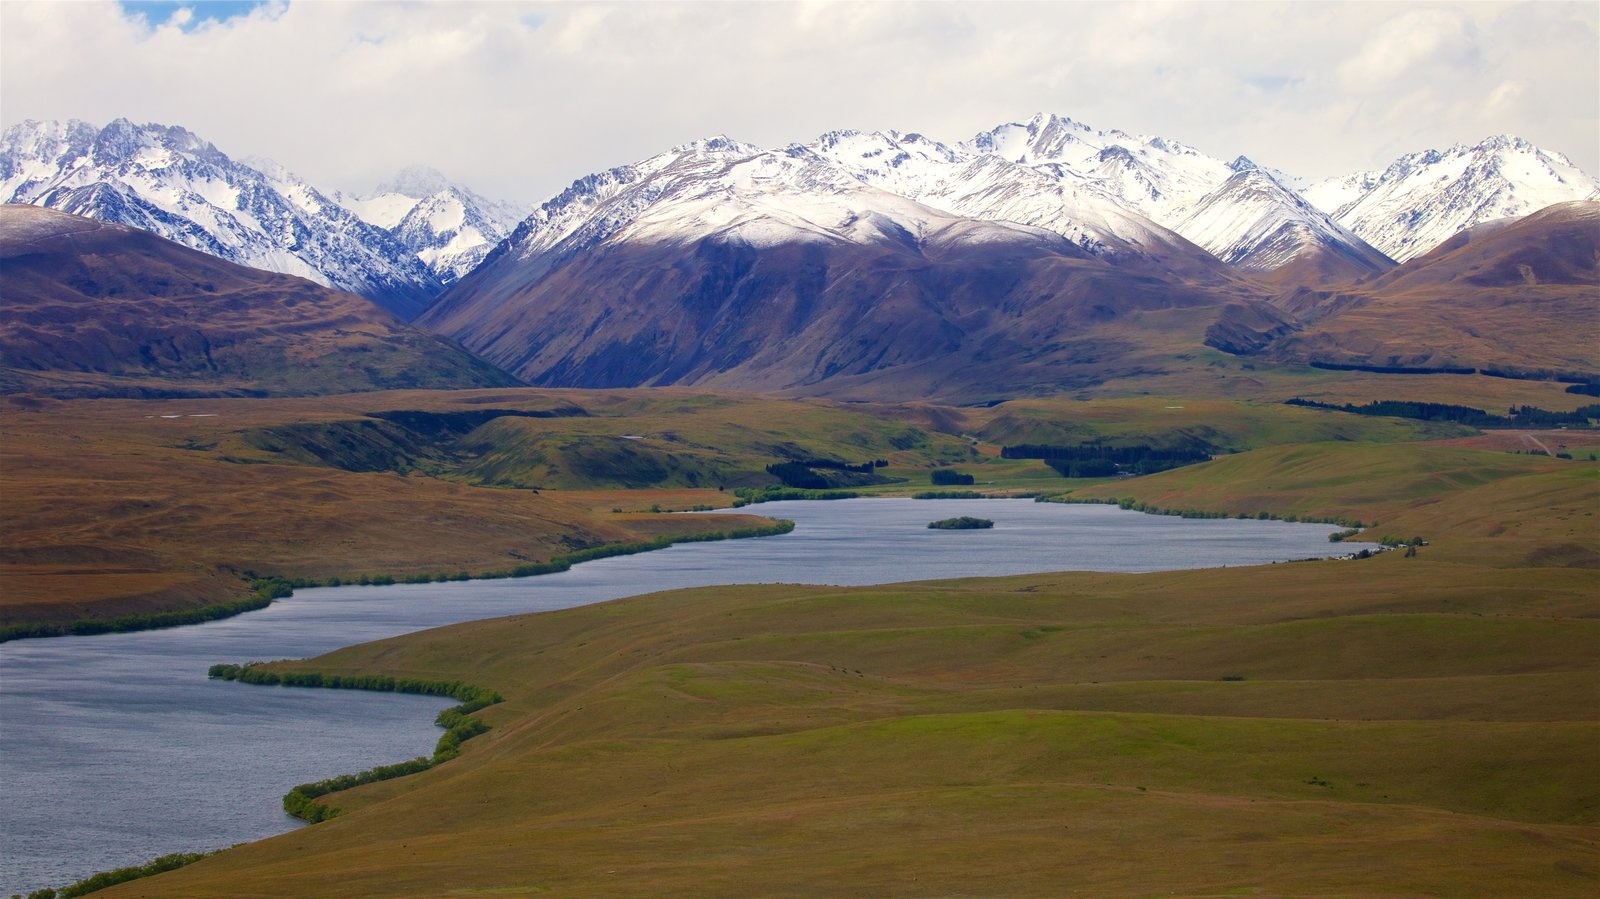 Mount John Observatory featuring snow, a lake or waterhole and tranquil scenes